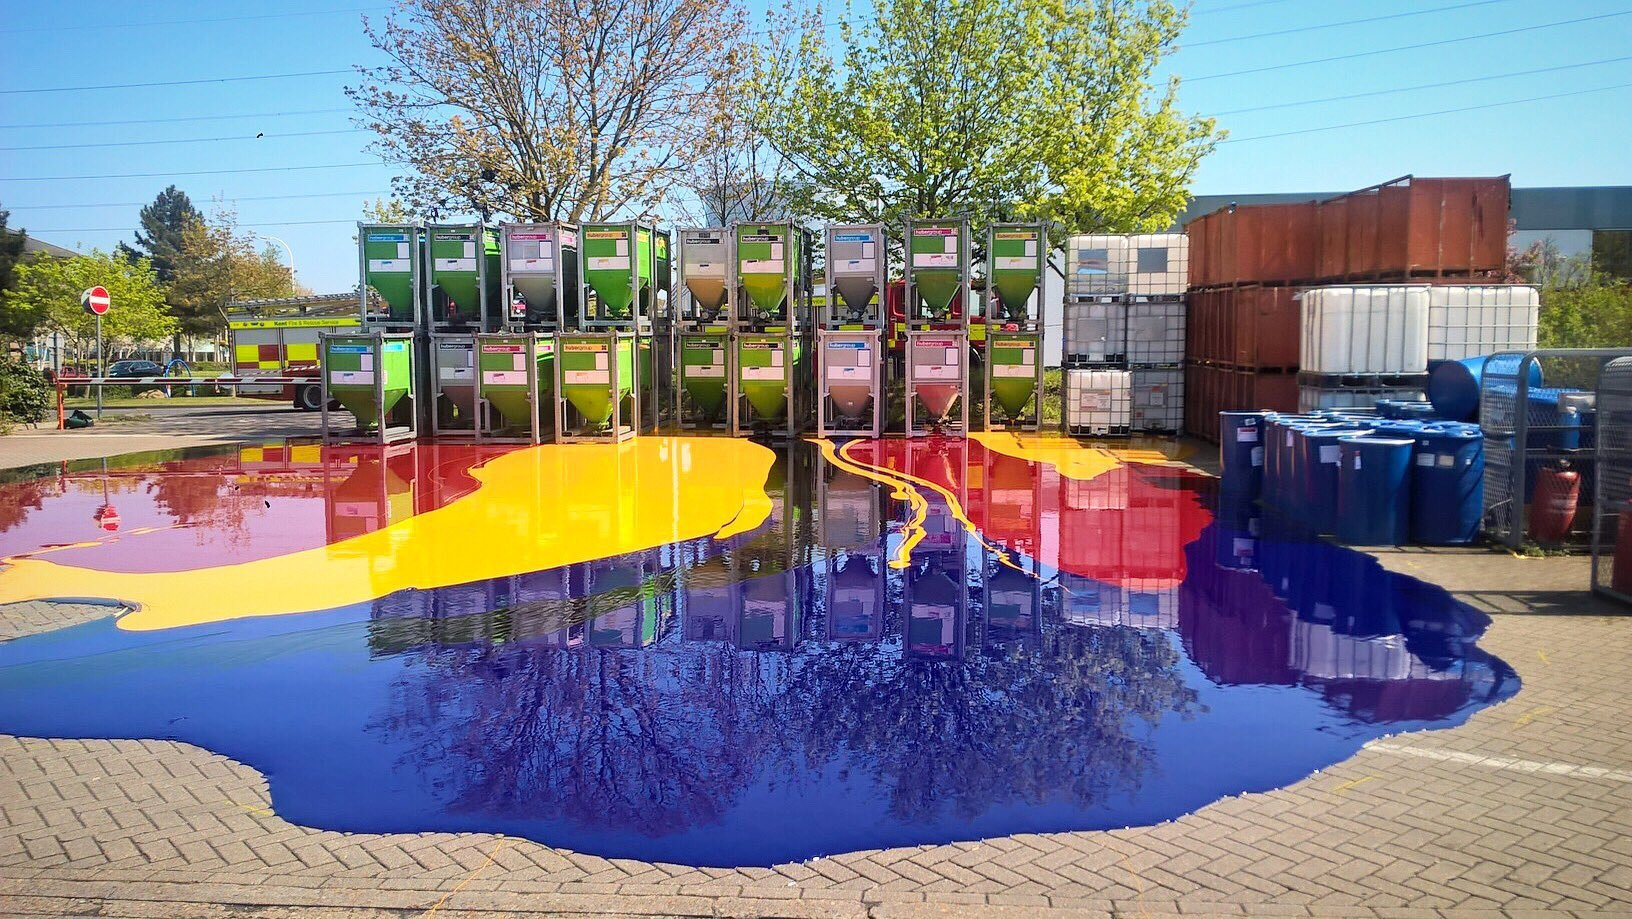 Fire crews were confronted with what looked like a modern day masterpiece when they were called to deal with this 5,000 litre INK spill. See National News story NNink. They likened the multi-coloured slick to the popular TV show Art Attack. But the call-out did have a serious side as the firefighters prevented the inks - which can contain harmful chemicals - leaking into the local water supply in Dartford, Kent. Three fire engines rushed to the Howard Hunt Group premises in the town to contain the spill.